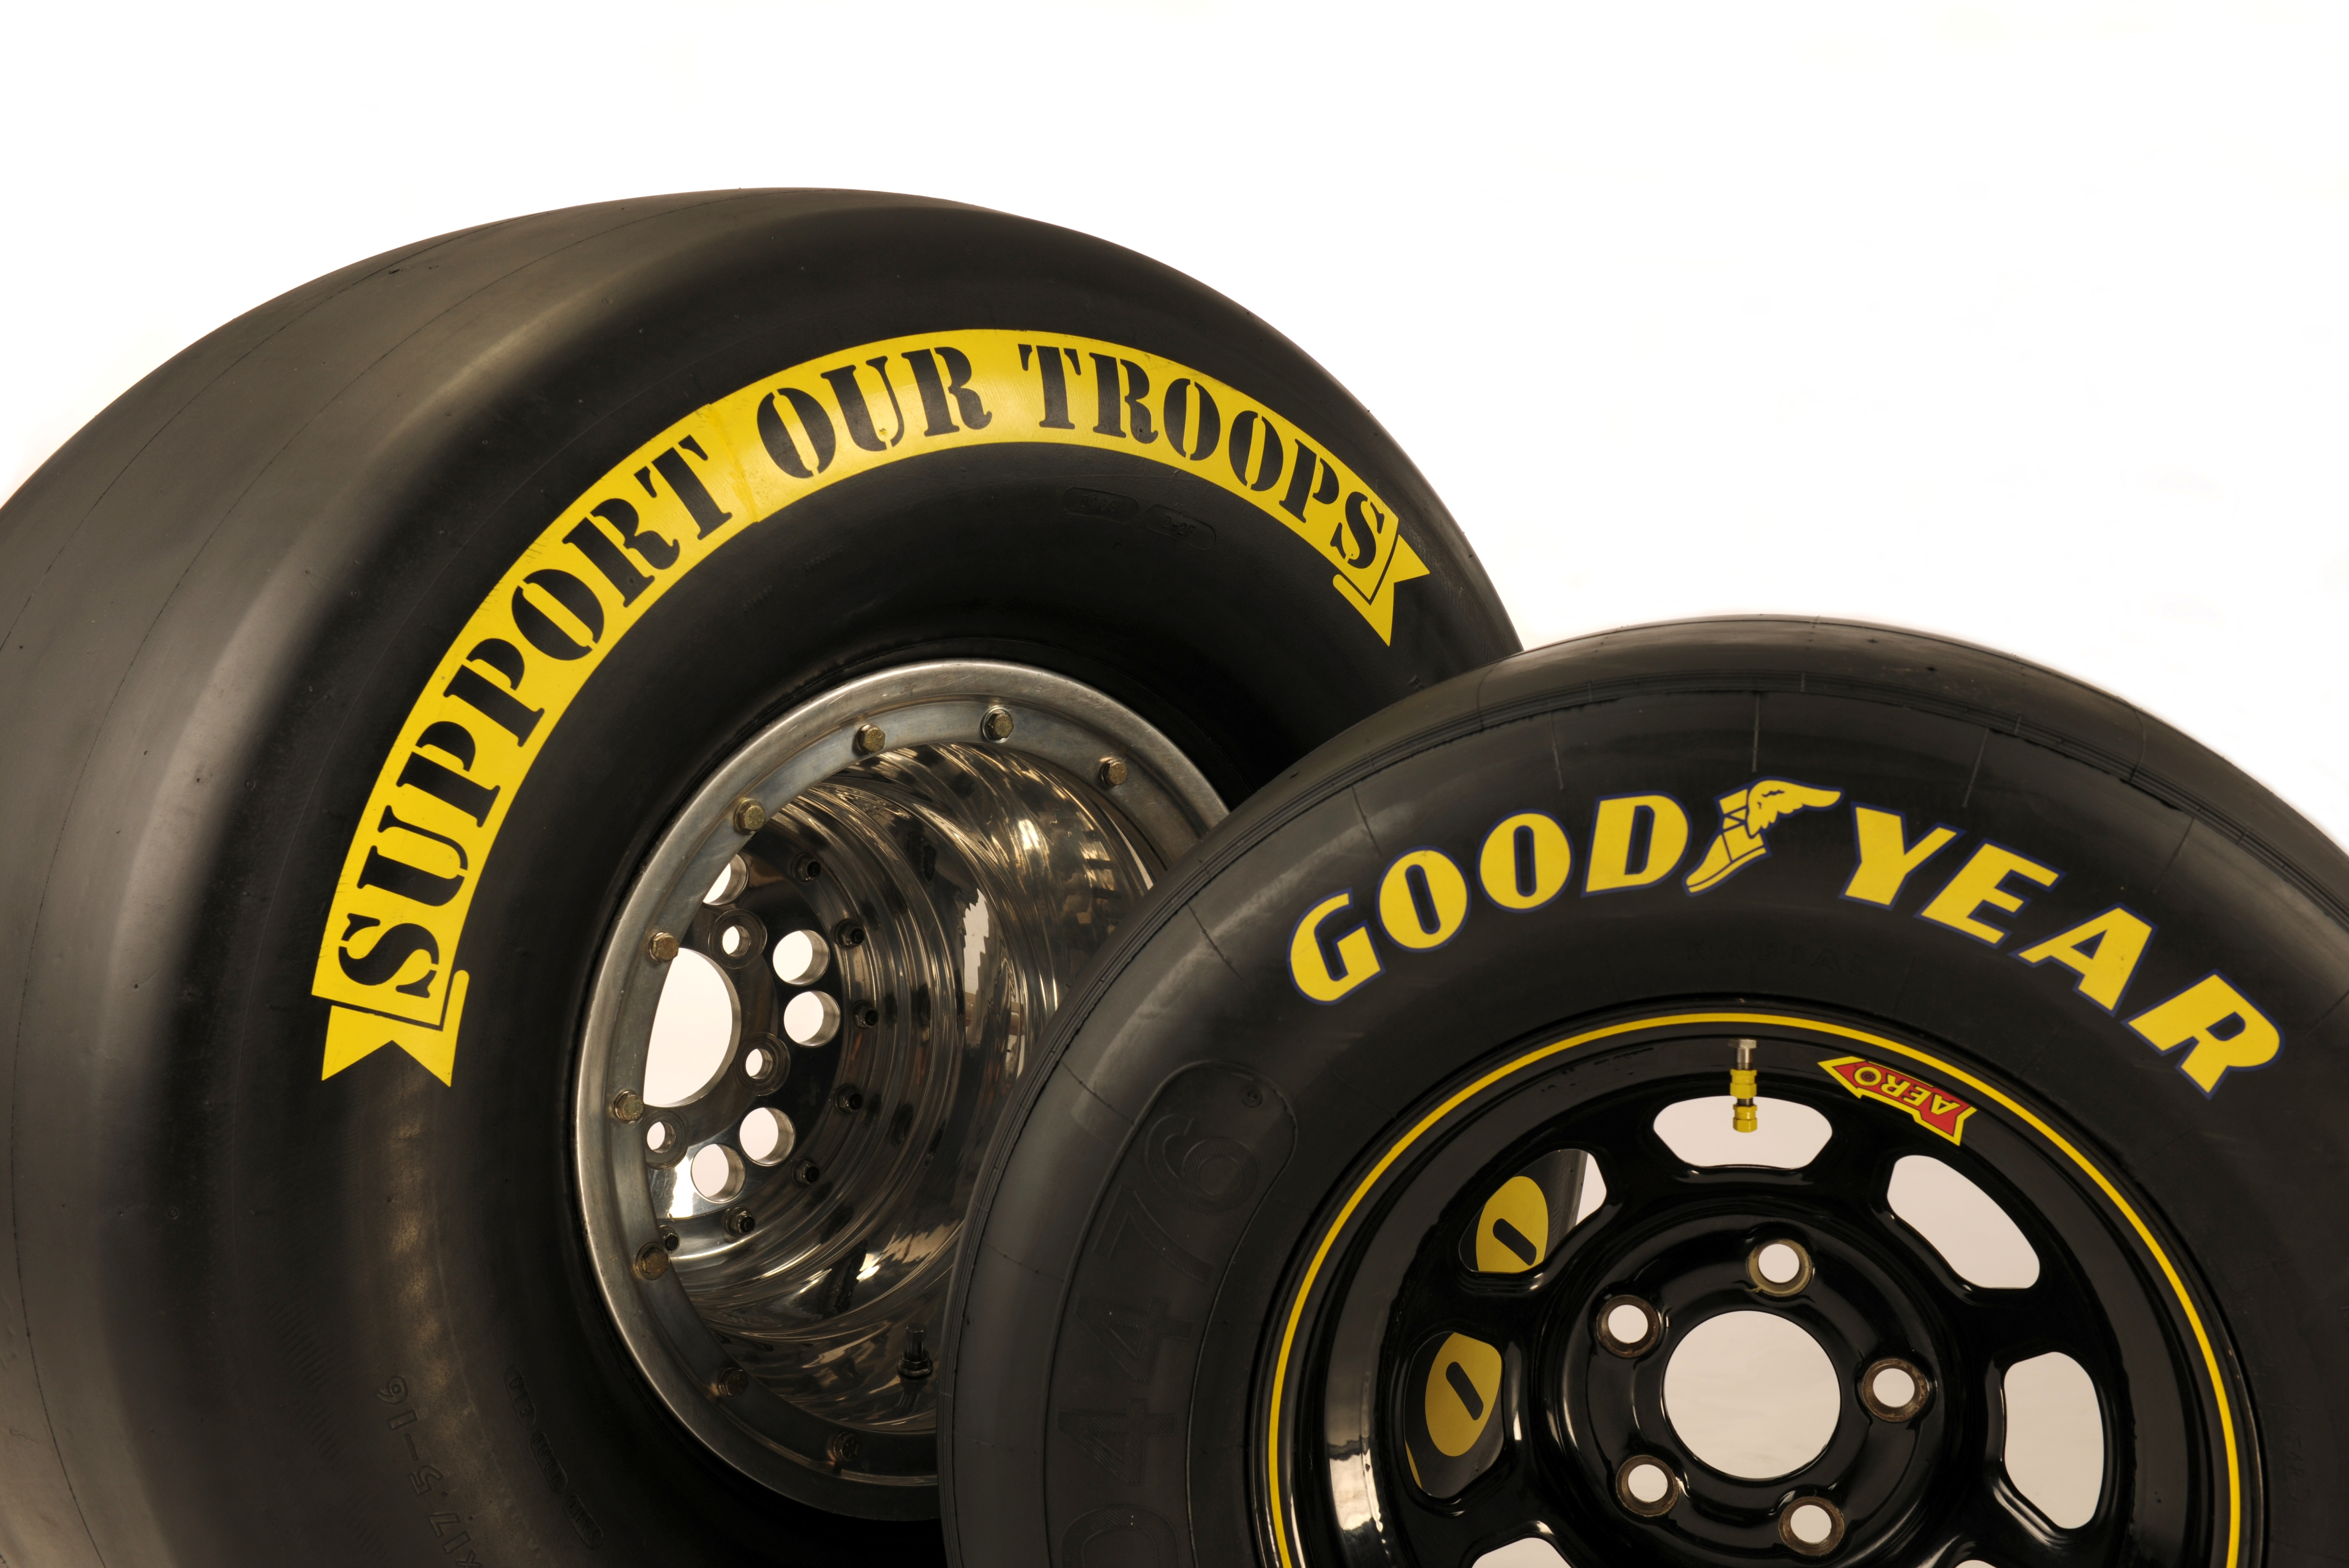 Goodyear Sports Car Tires